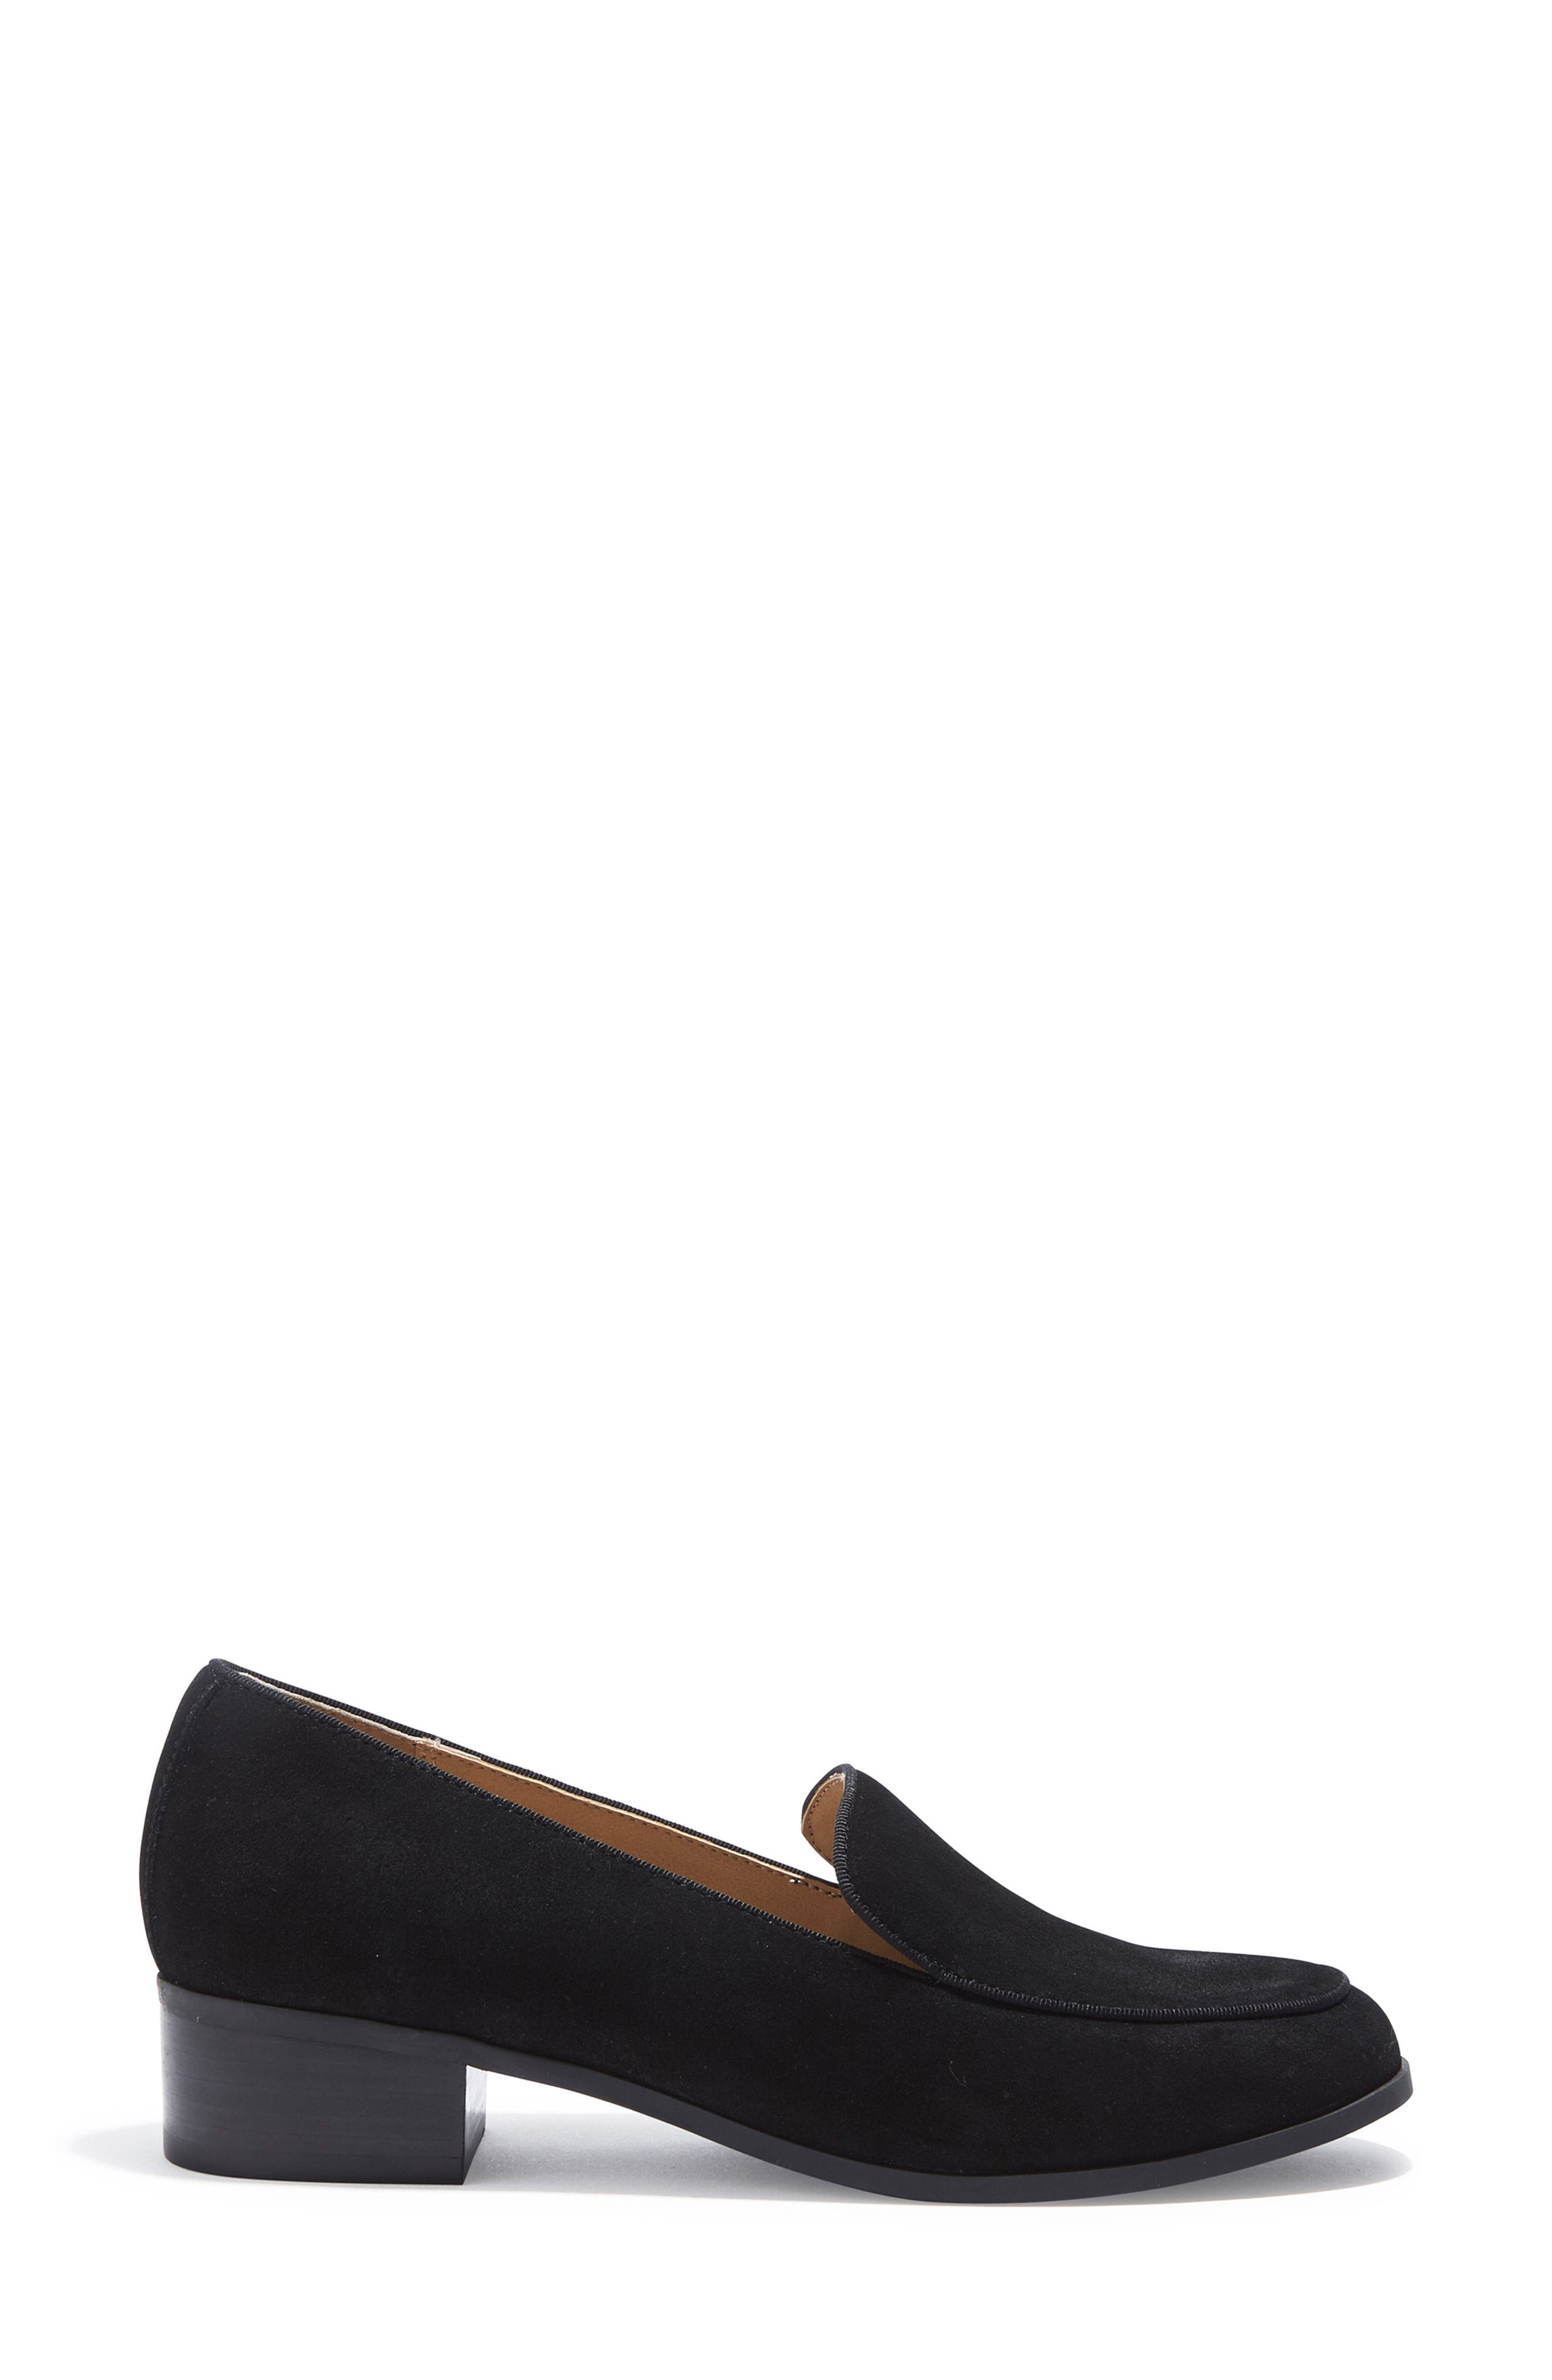 Jazzy Loafer,                             Alternate thumbnail 3, color,                             Black Suede